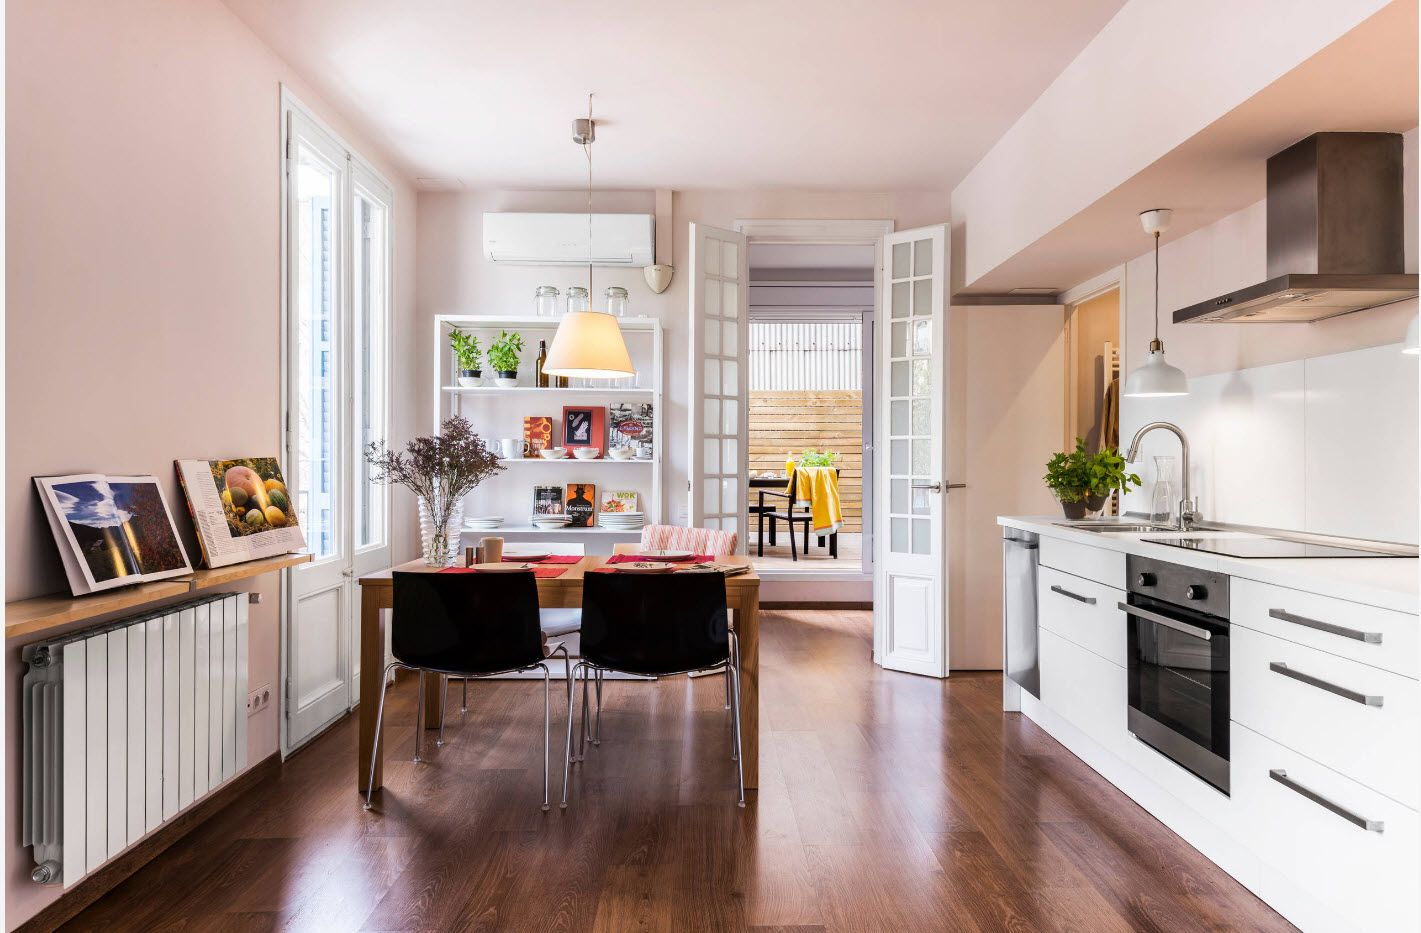 Modern dining room open layout with parquet and full of light